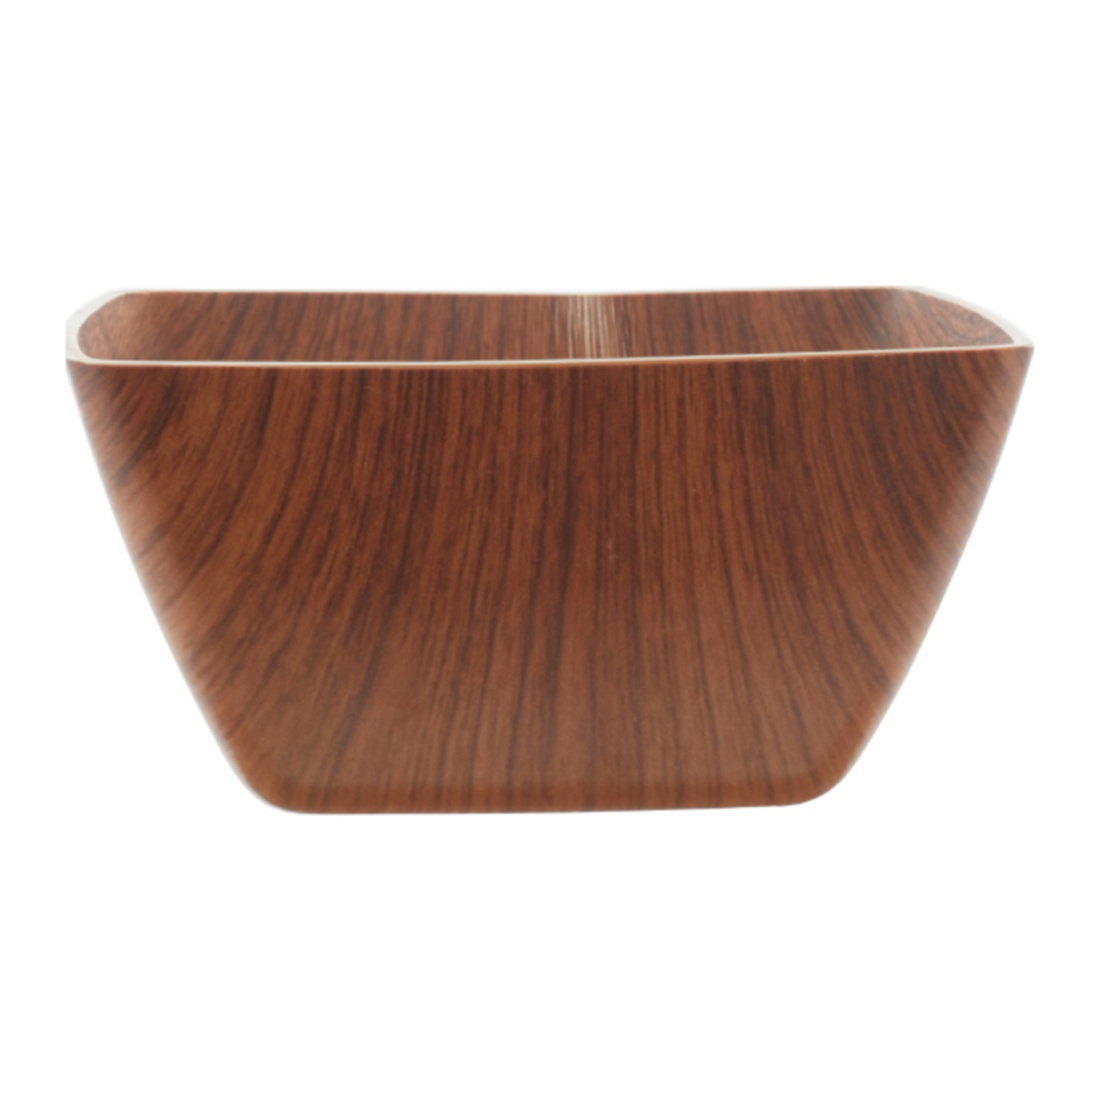 Oak Square Bowl Plastic Bowls in Wooden Finish Colour by Living Essence